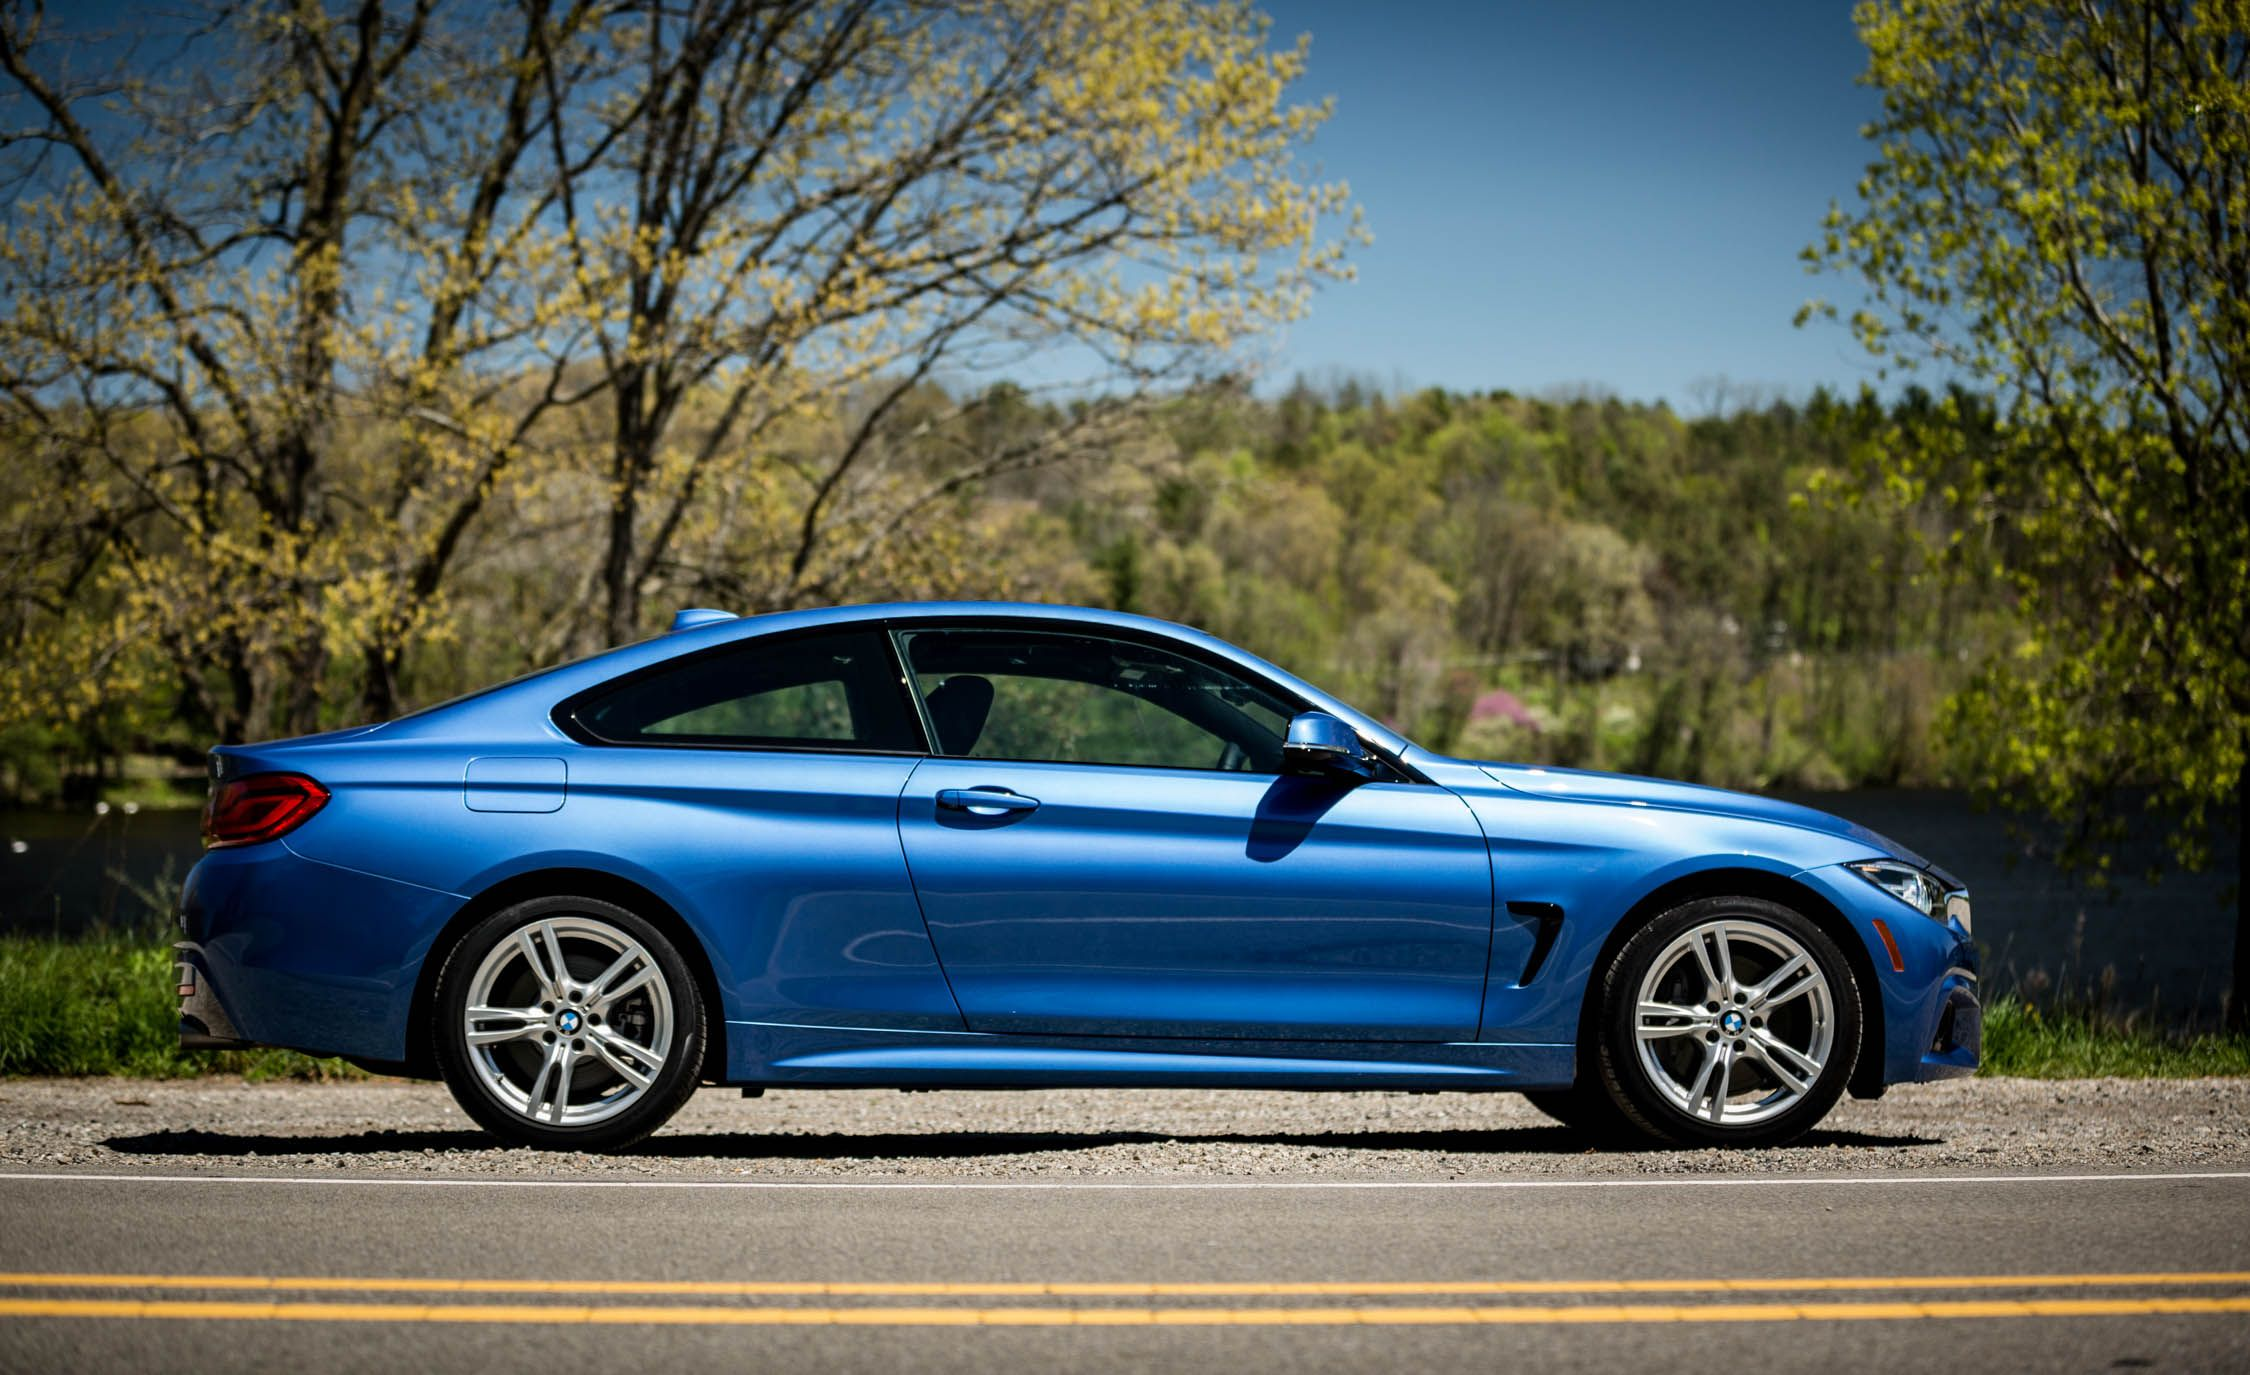 2018 Bmw 4 Series Review >> 2018 Bmw 4 Series In Depth Model Review Car And Driver